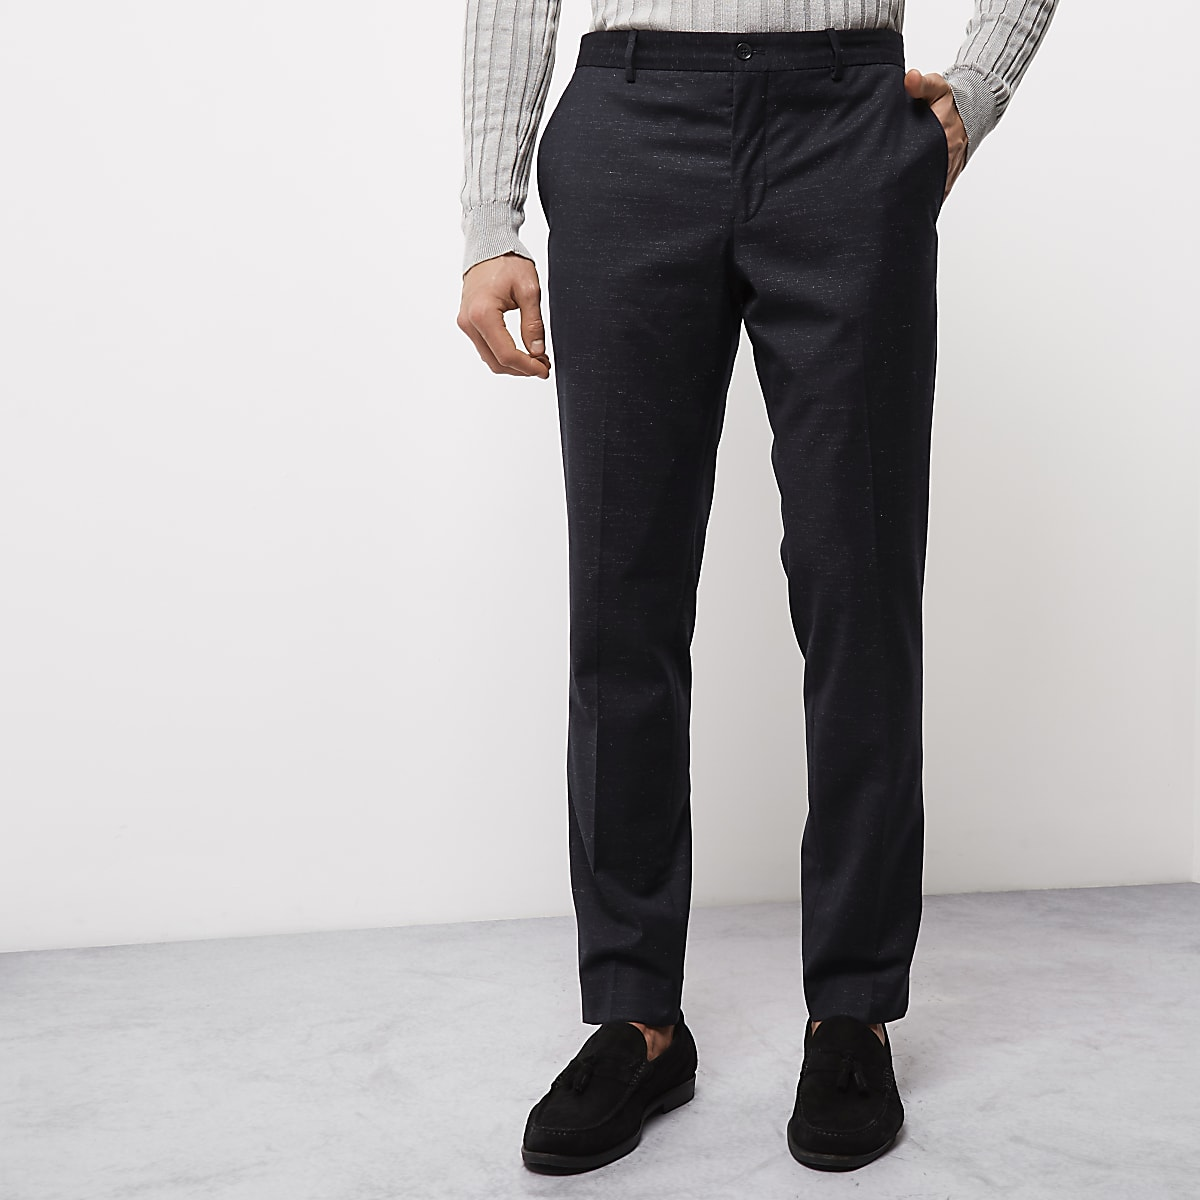 Jack & Jones navy blue flecked smart pants